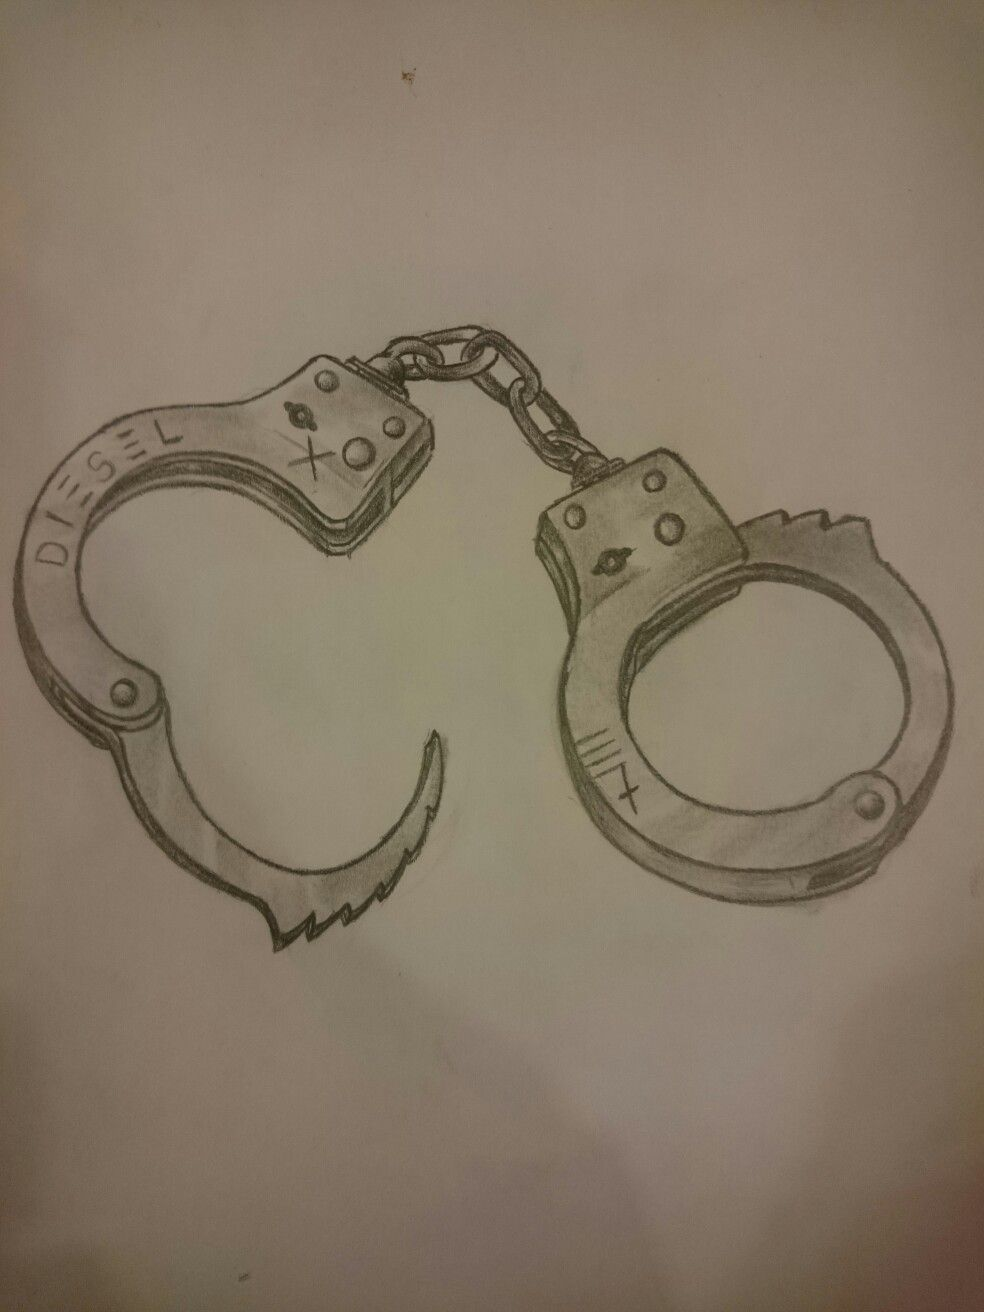 Drawing Handcuffs Tattoo Sketch Prison Drawings Handcuffs Drawing Art Tattoo